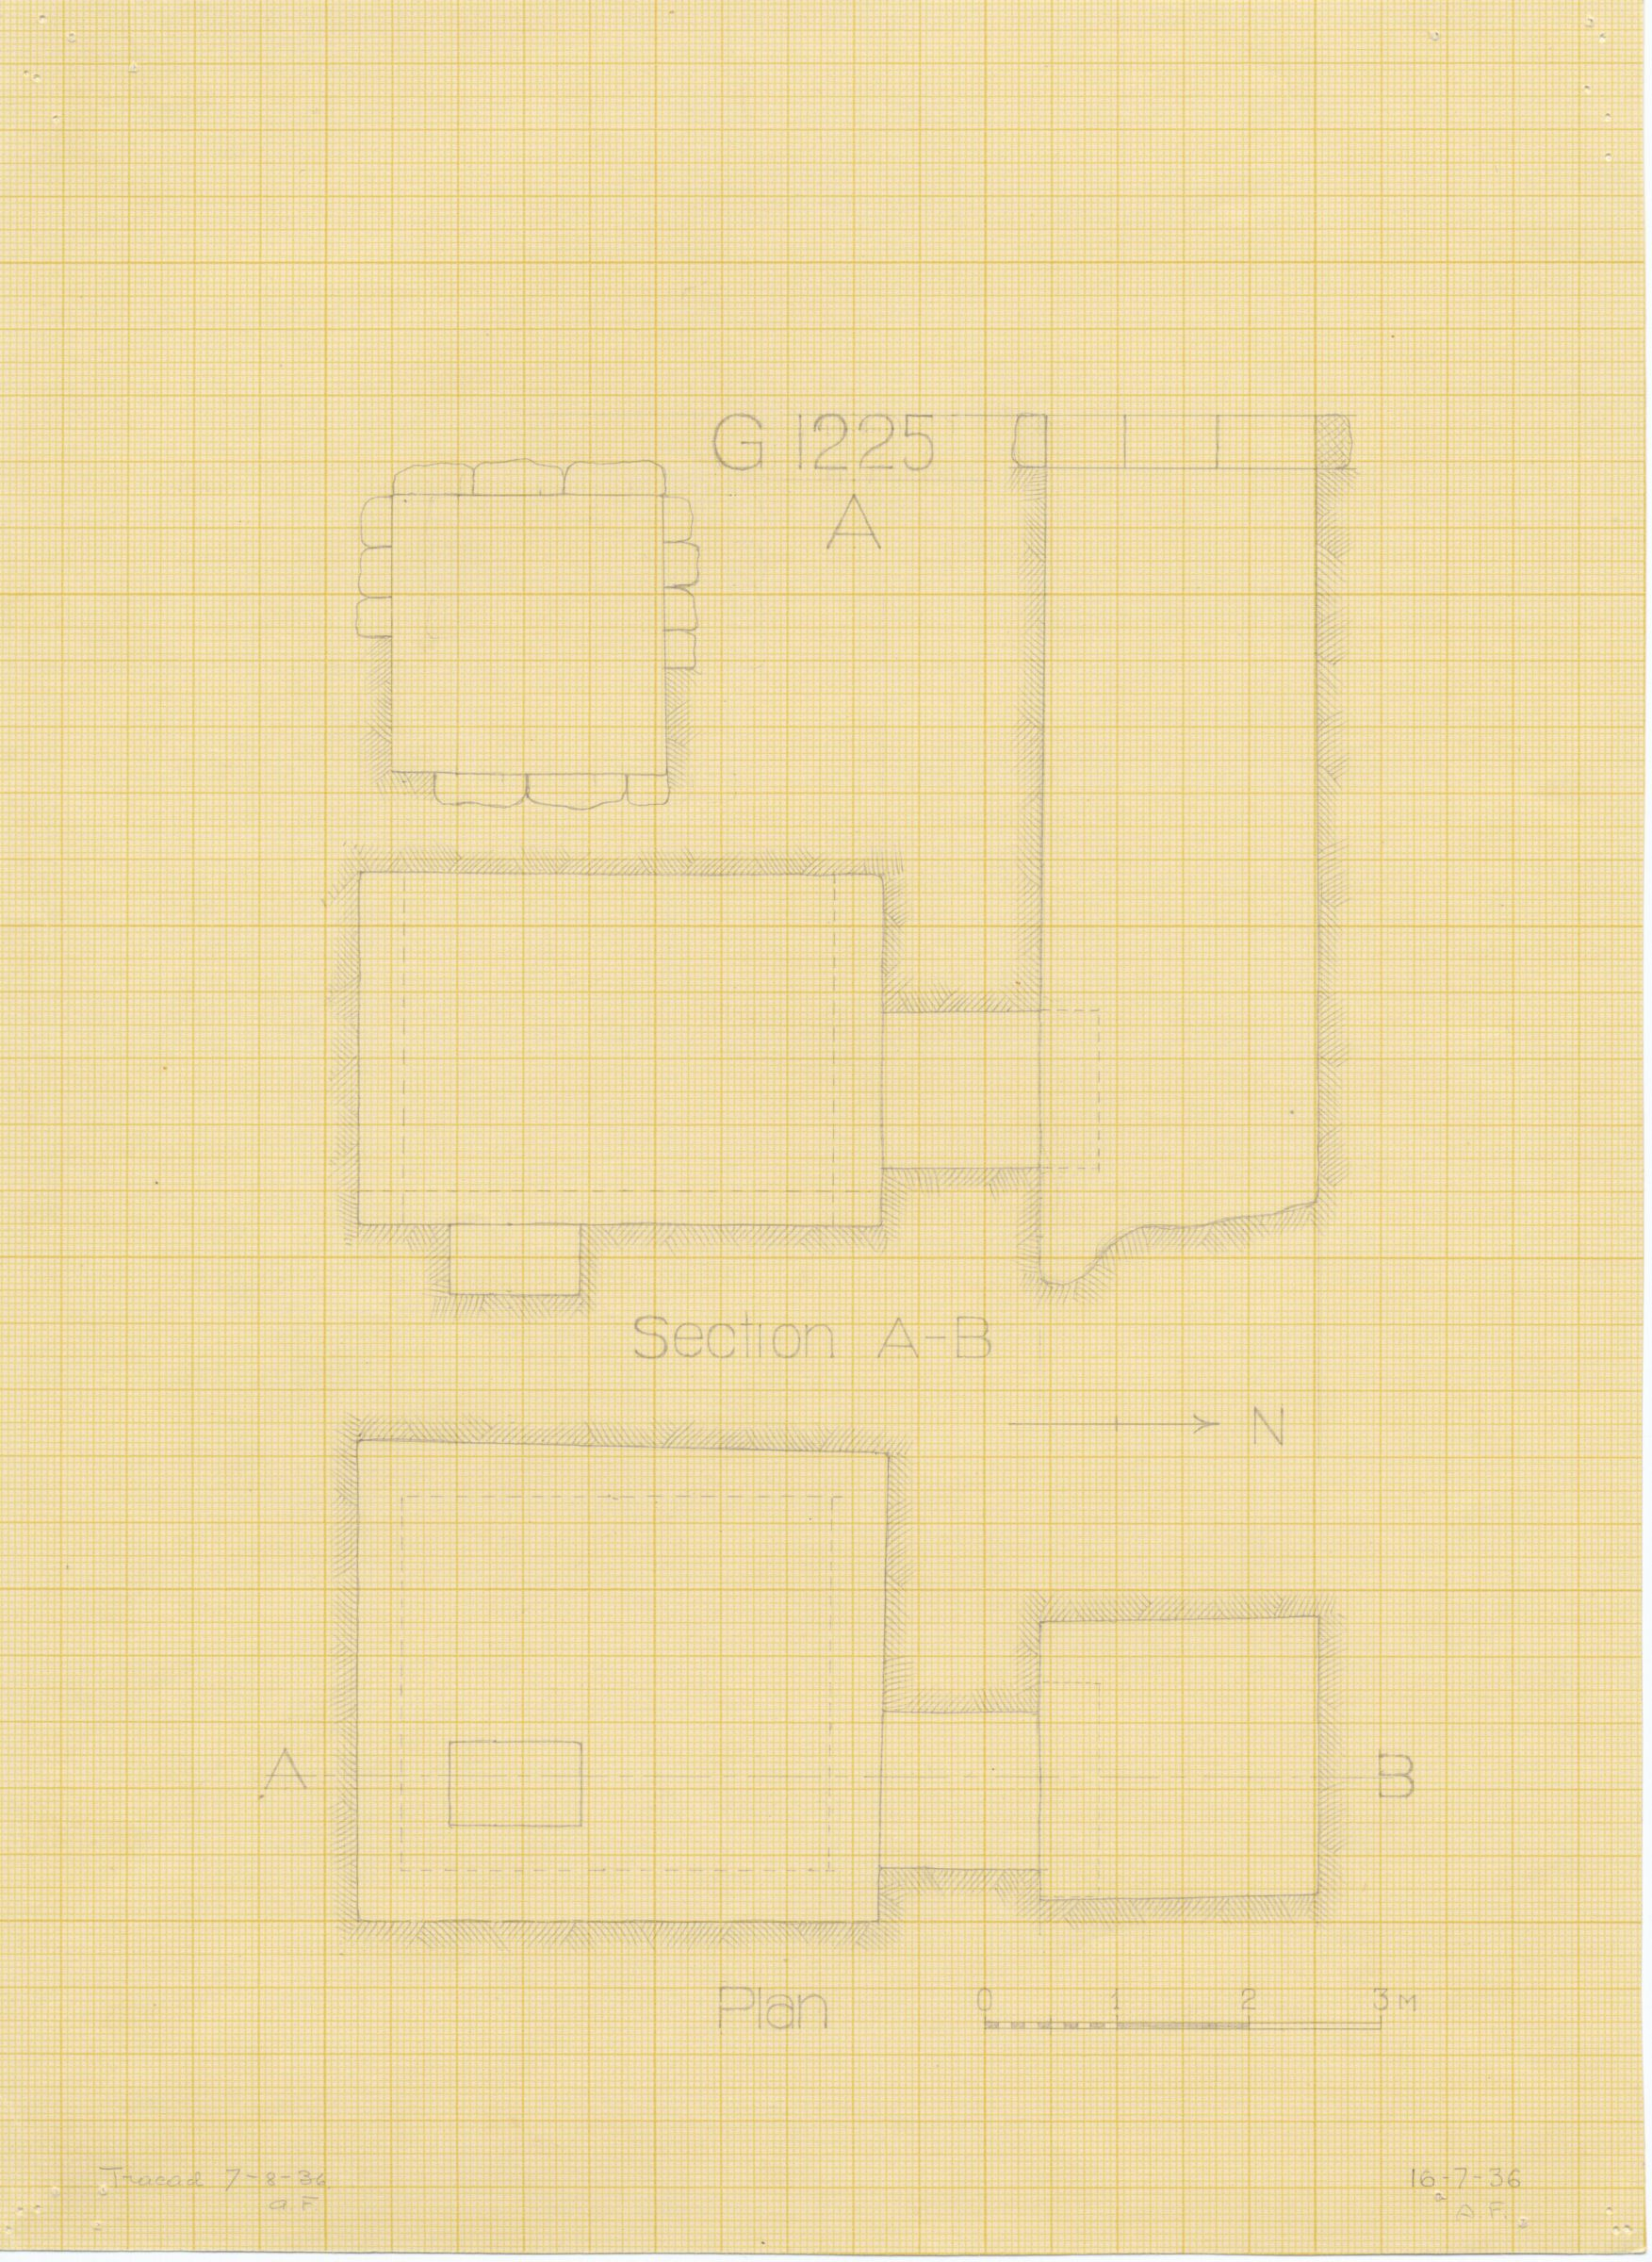 Maps and plans: G 1225, Shaft A